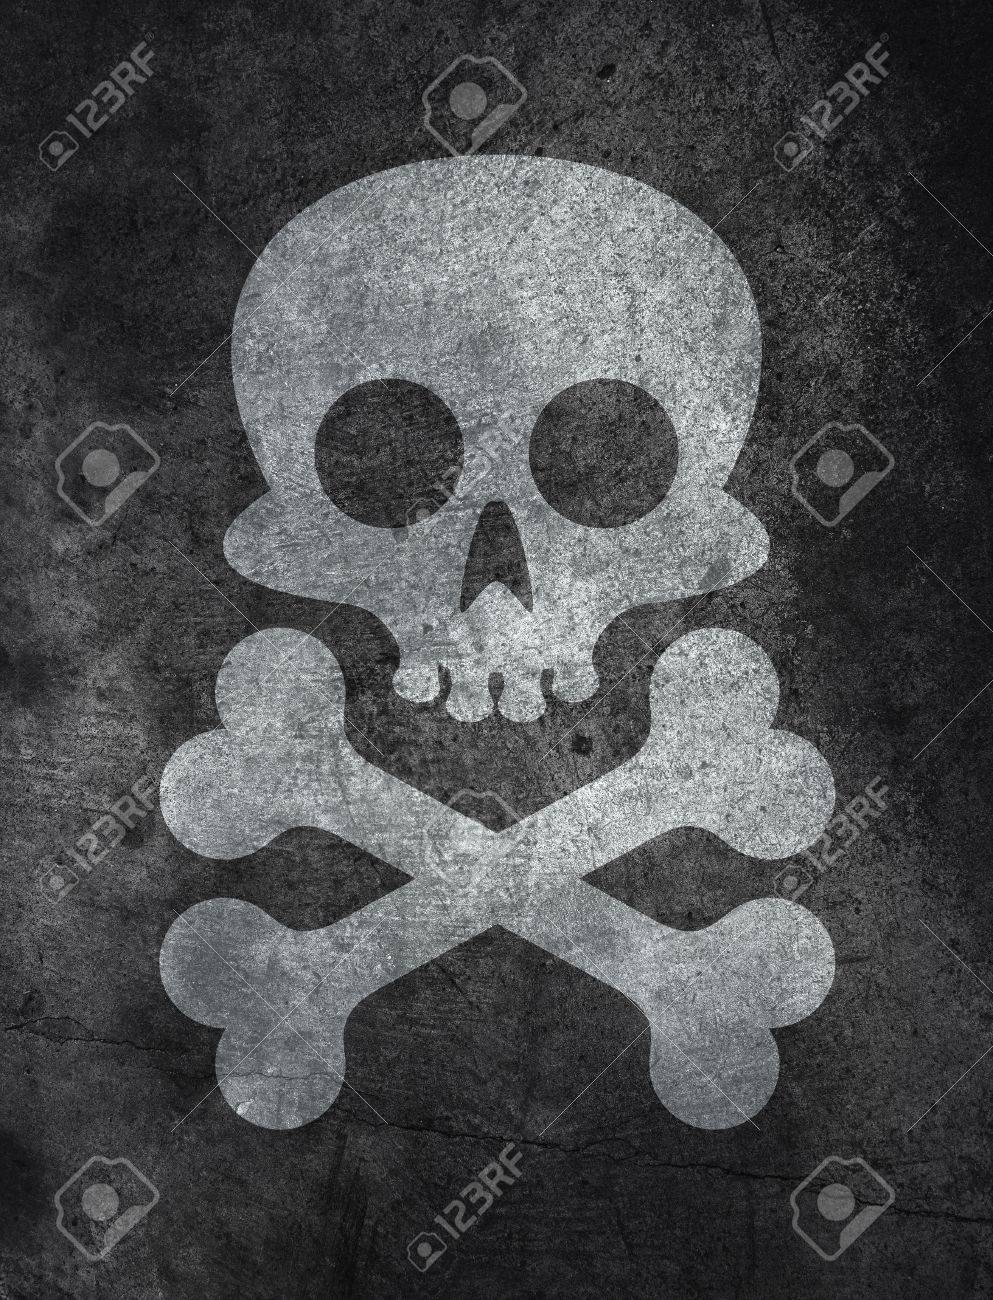 Dark Concrete Floor Texture dark concrete floor texture background with skull and bones stock